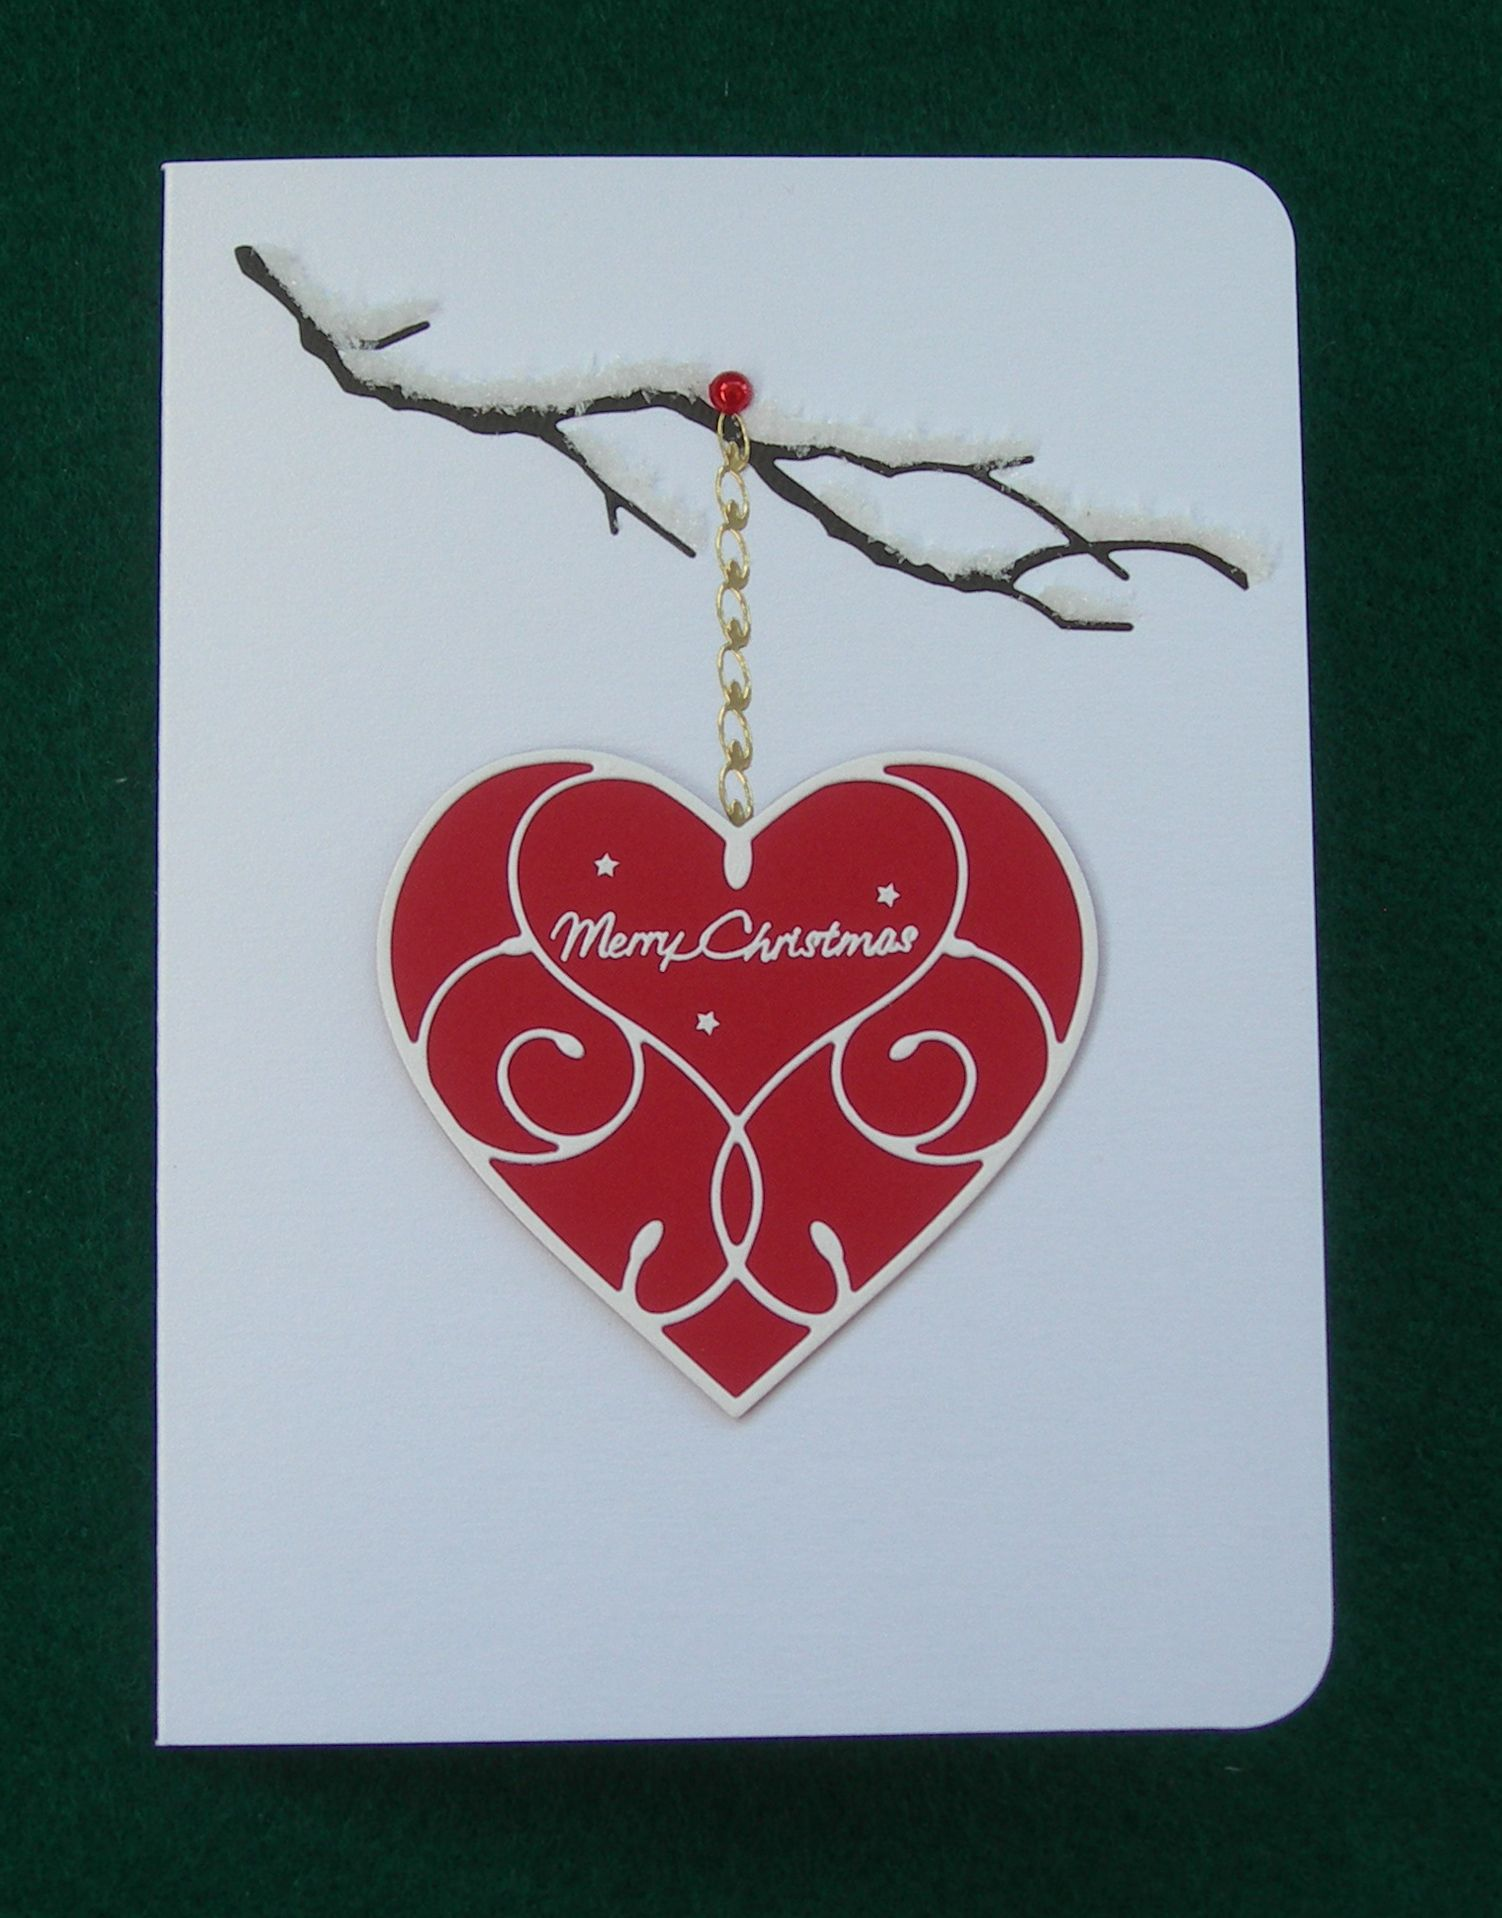 Mb Silverdale Heart Cupid Heart Woodland Branch I Used Flower